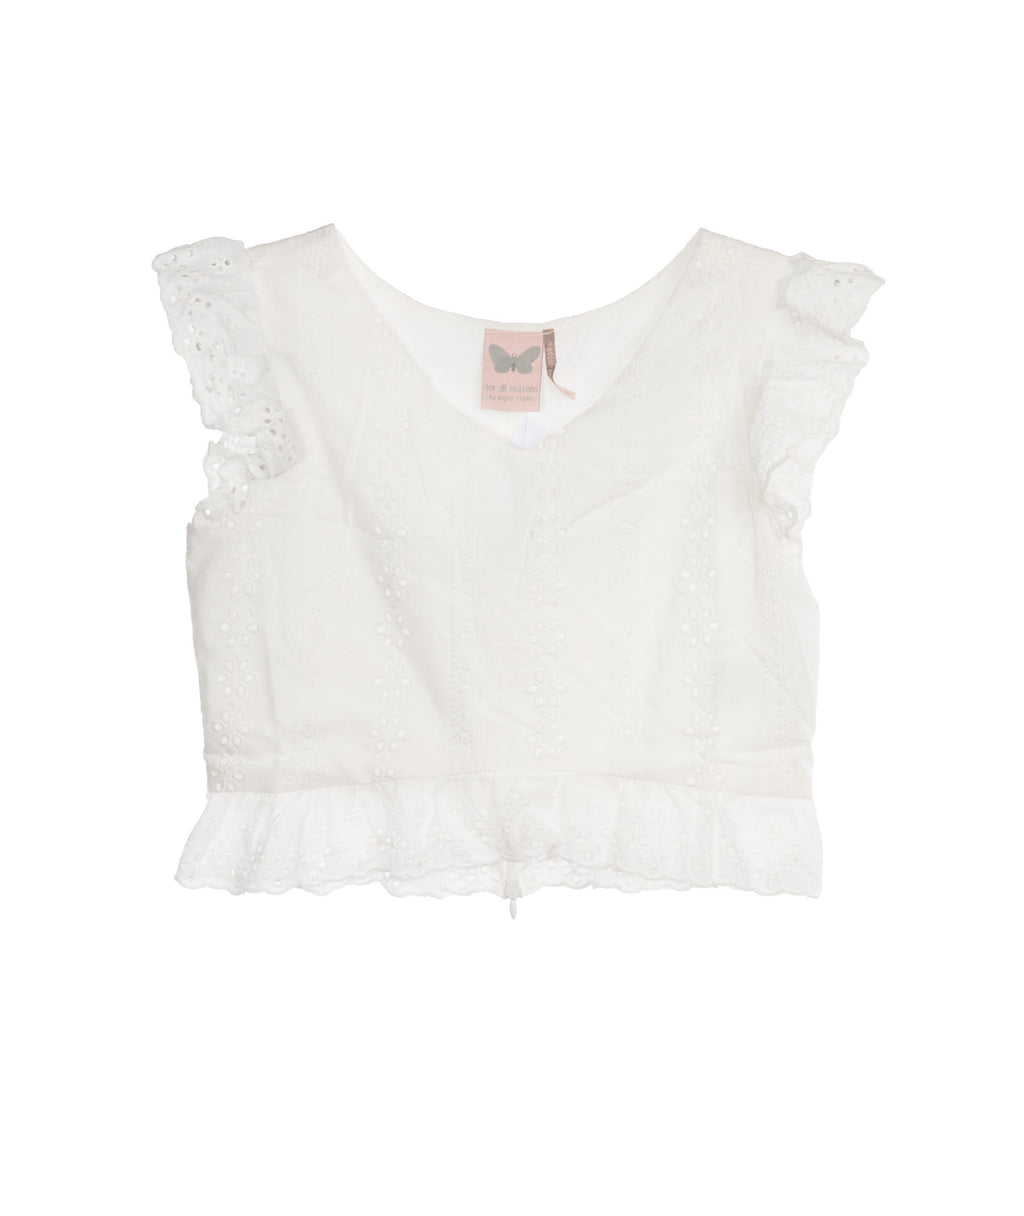 For All Seasons Girls Ivory Eyelet Top